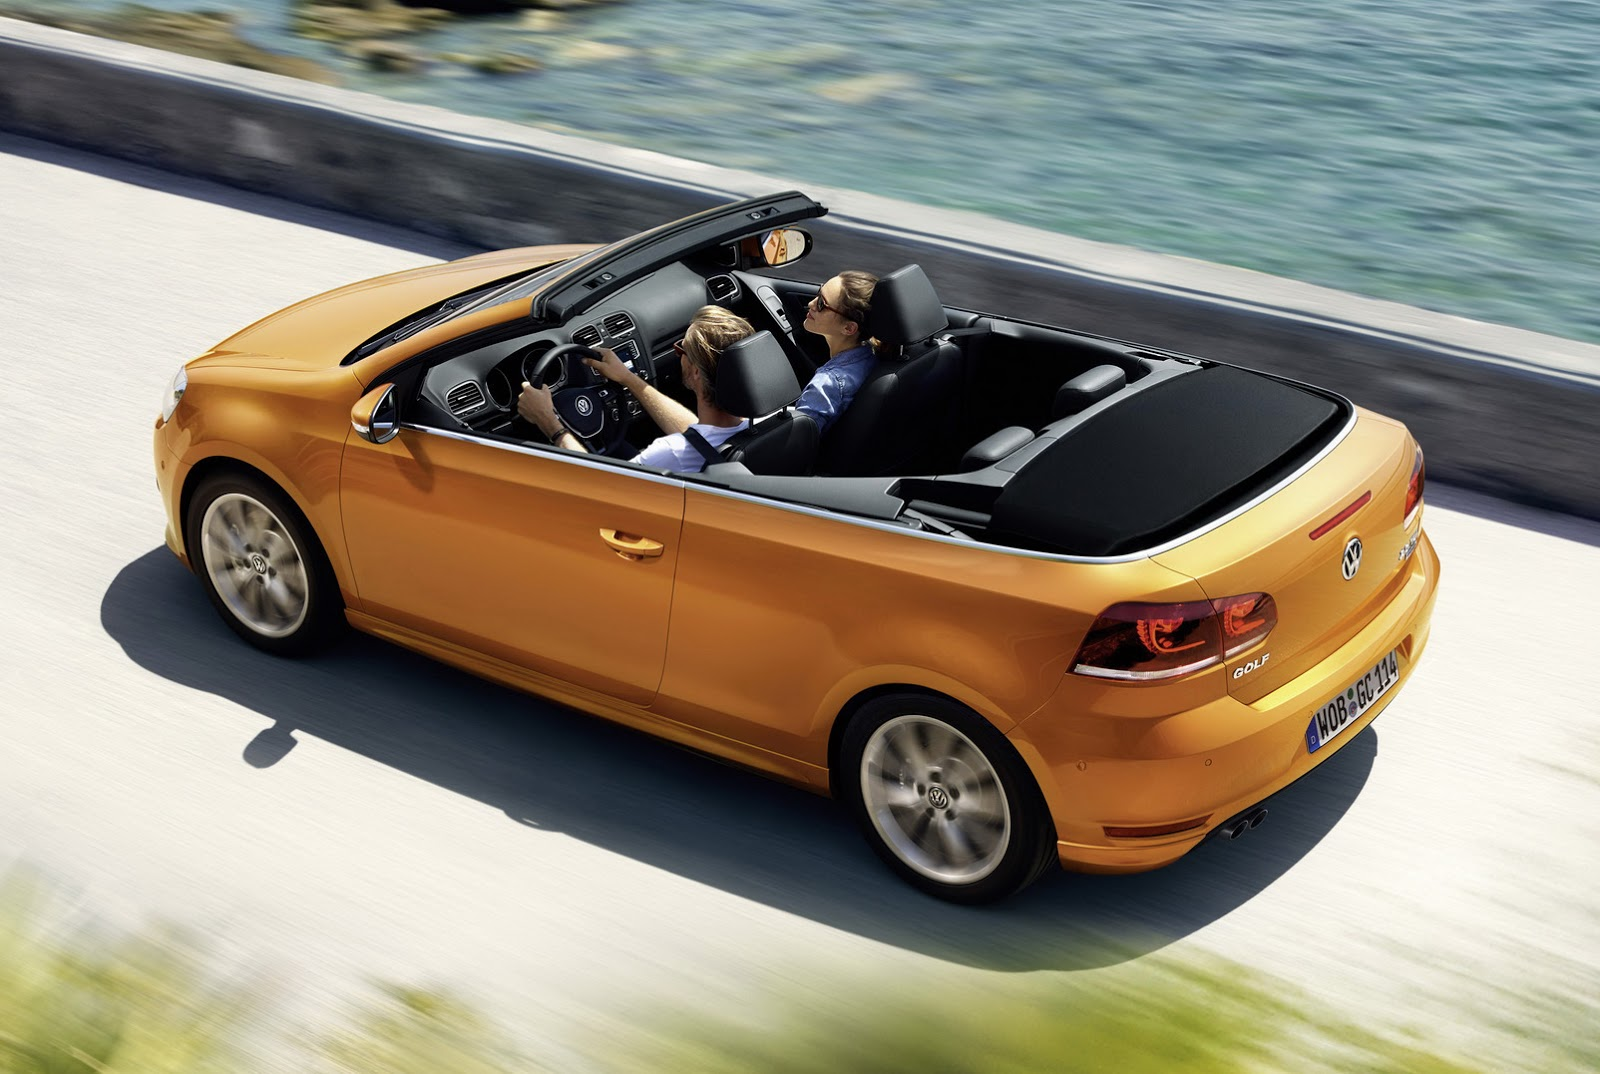 2016 Volkswagen Golf Cabriolet Preview (Photo 3 of 10)